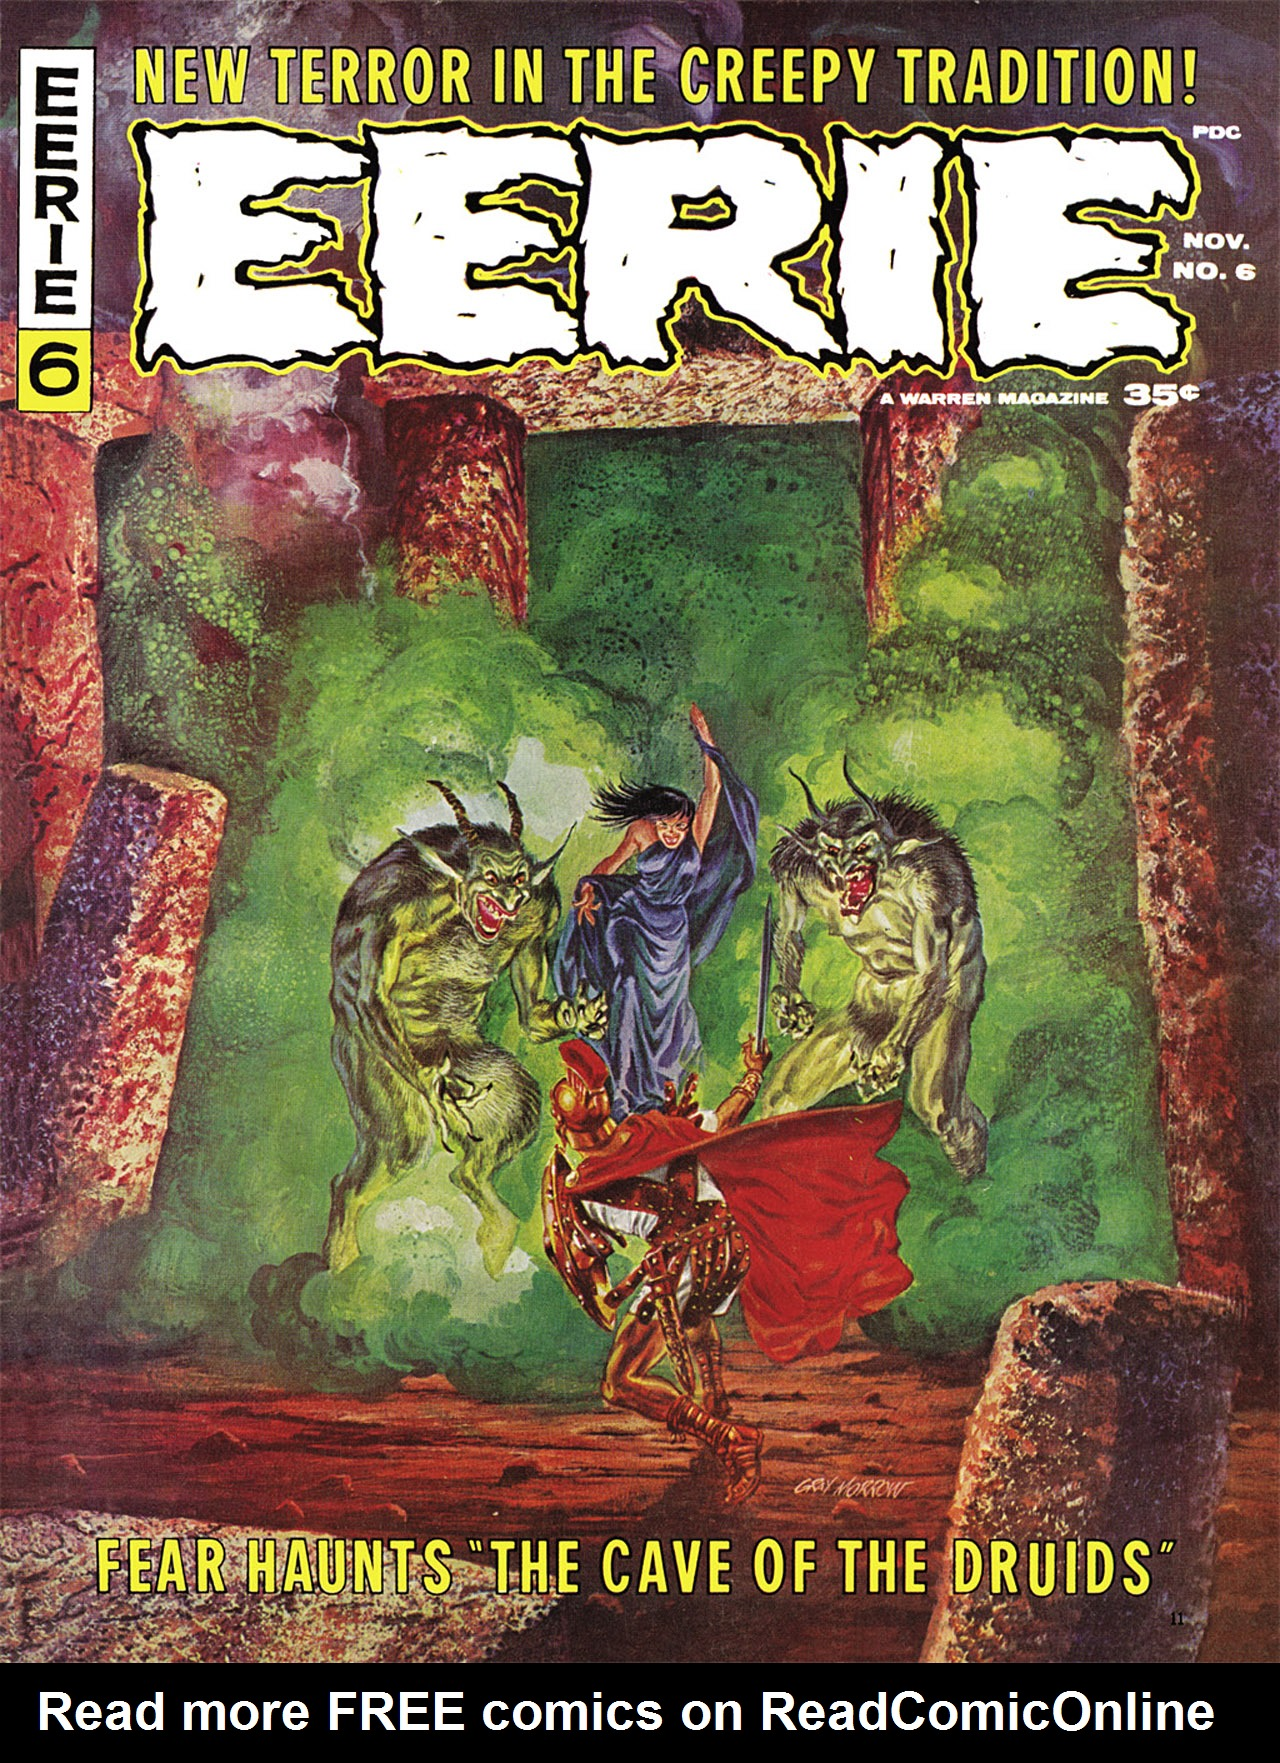 Read online Eerie Archives comic -  Issue # TPB 2 - 12